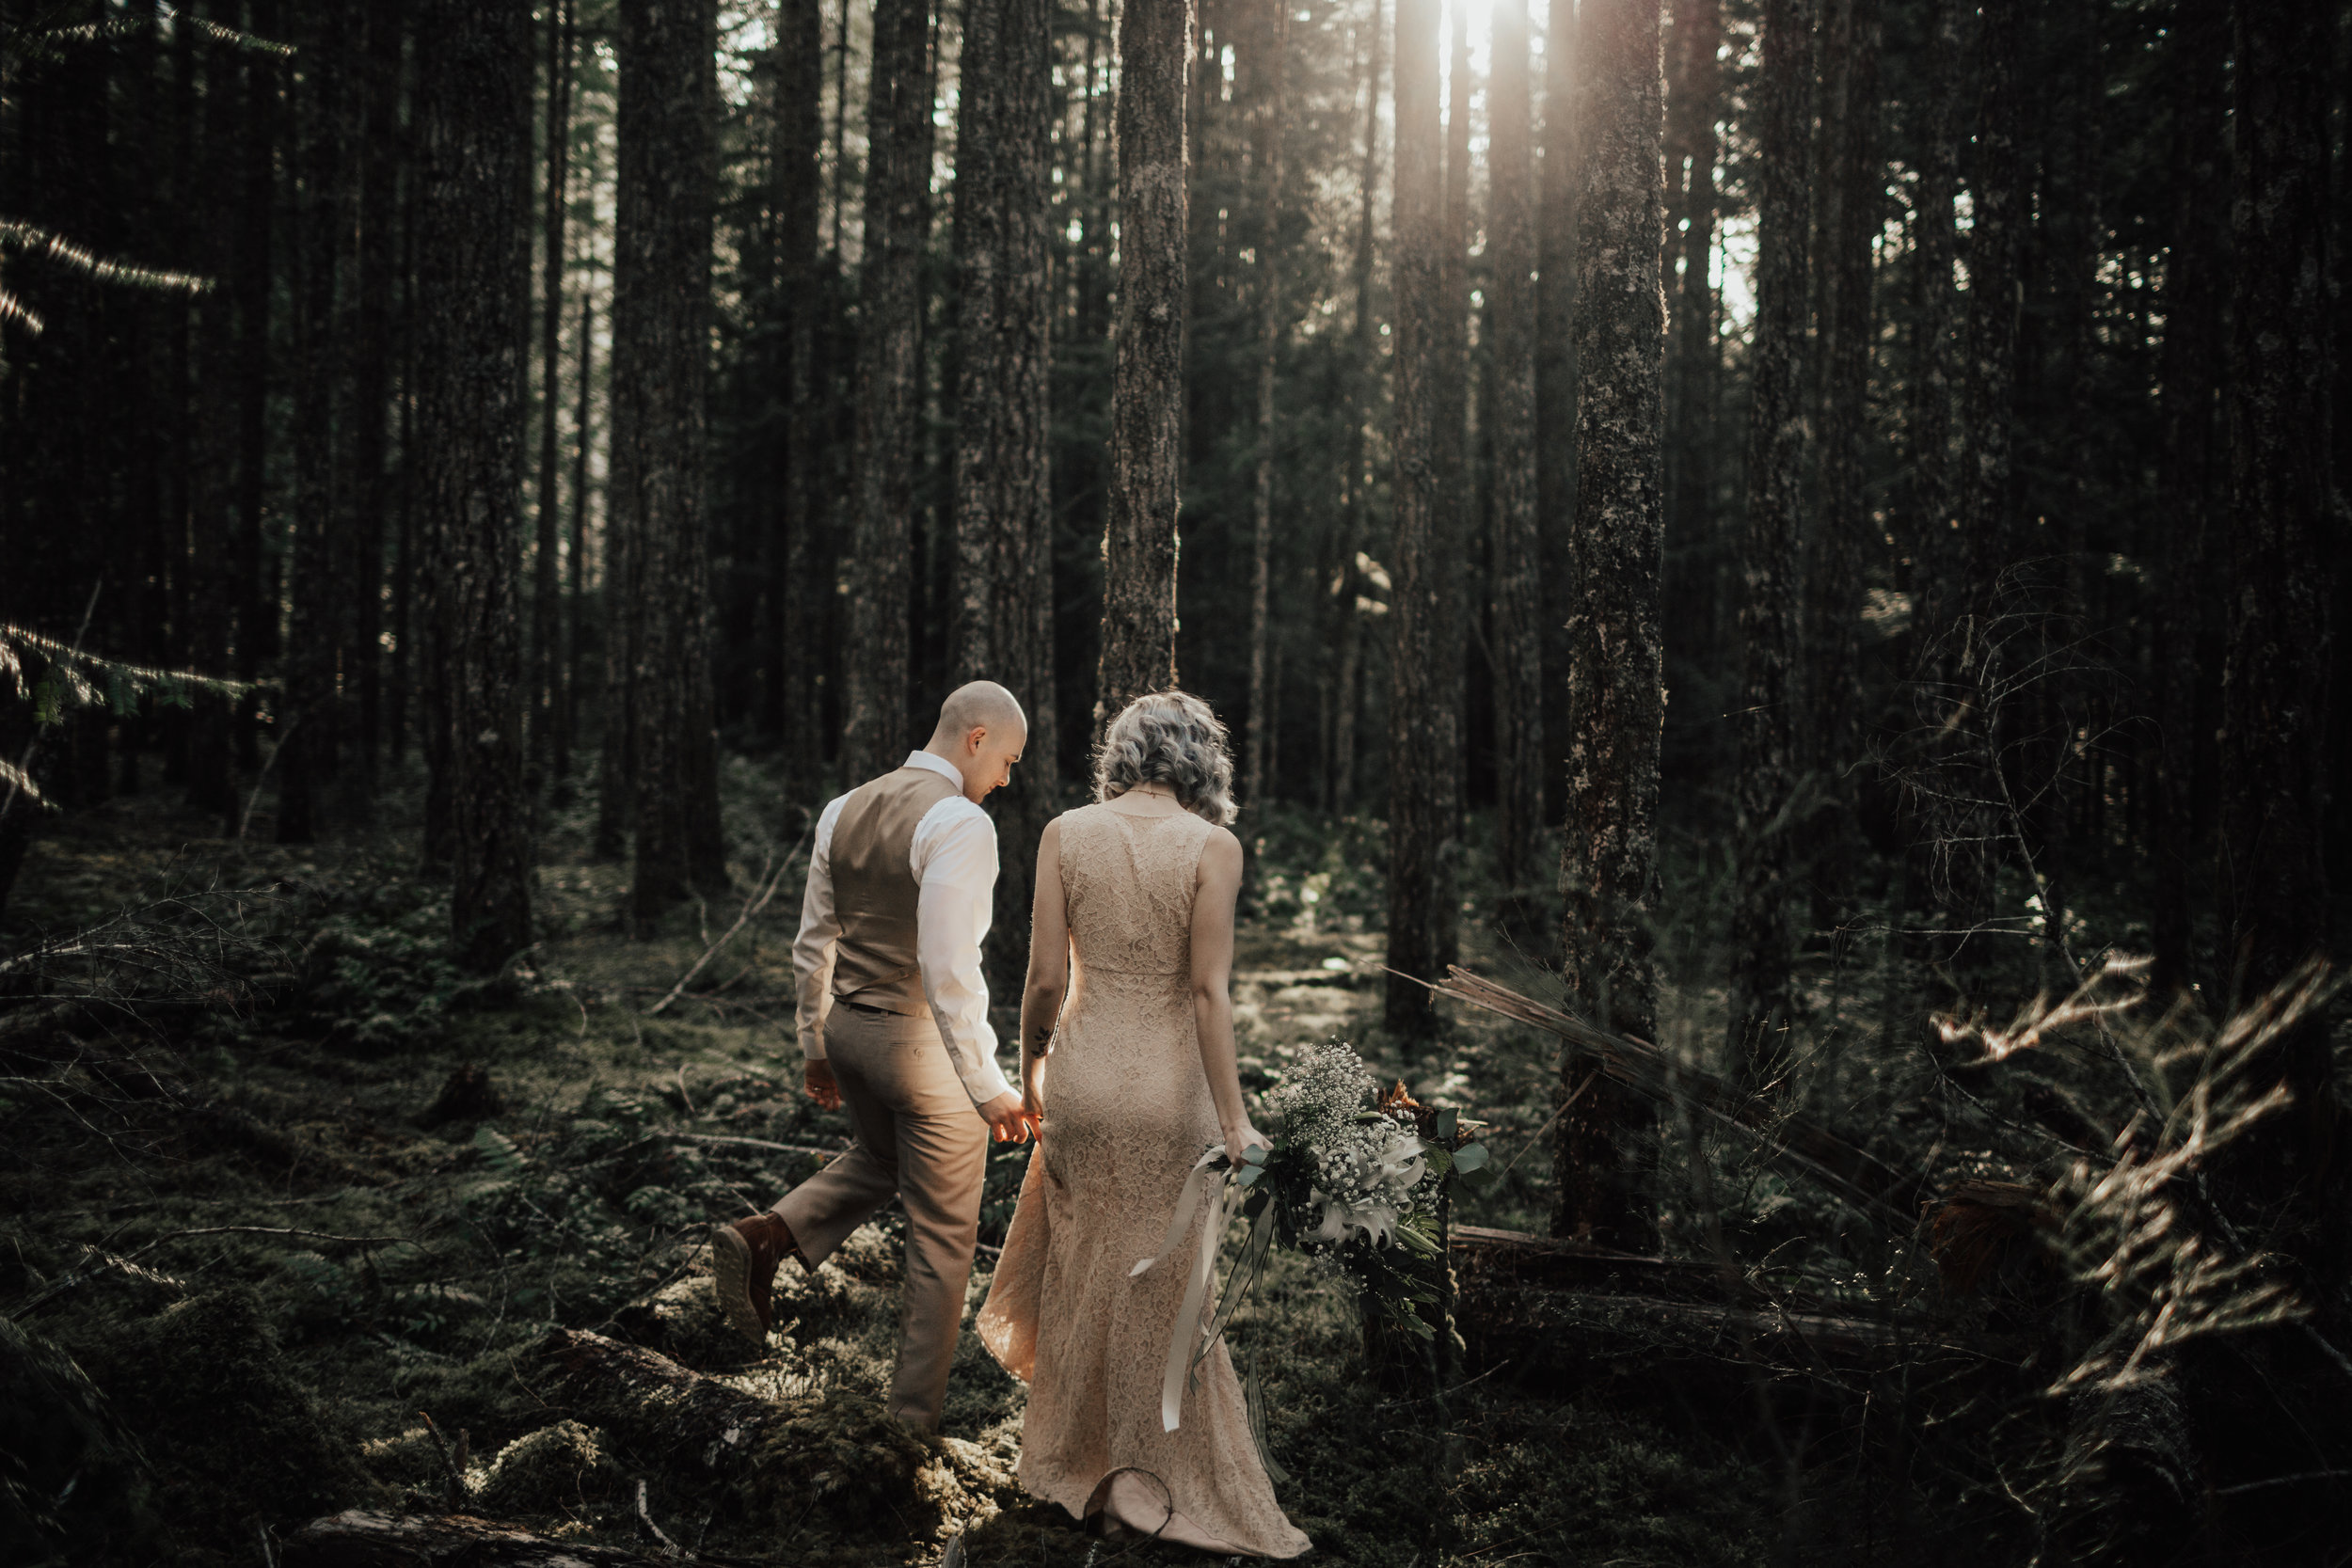 Port Angeles-PNW-Sequim-Portrait-wedding-elopement-photographer-kayladawnphoto-kayla dawn photography-olympic peninsula-portraiture22.jpg